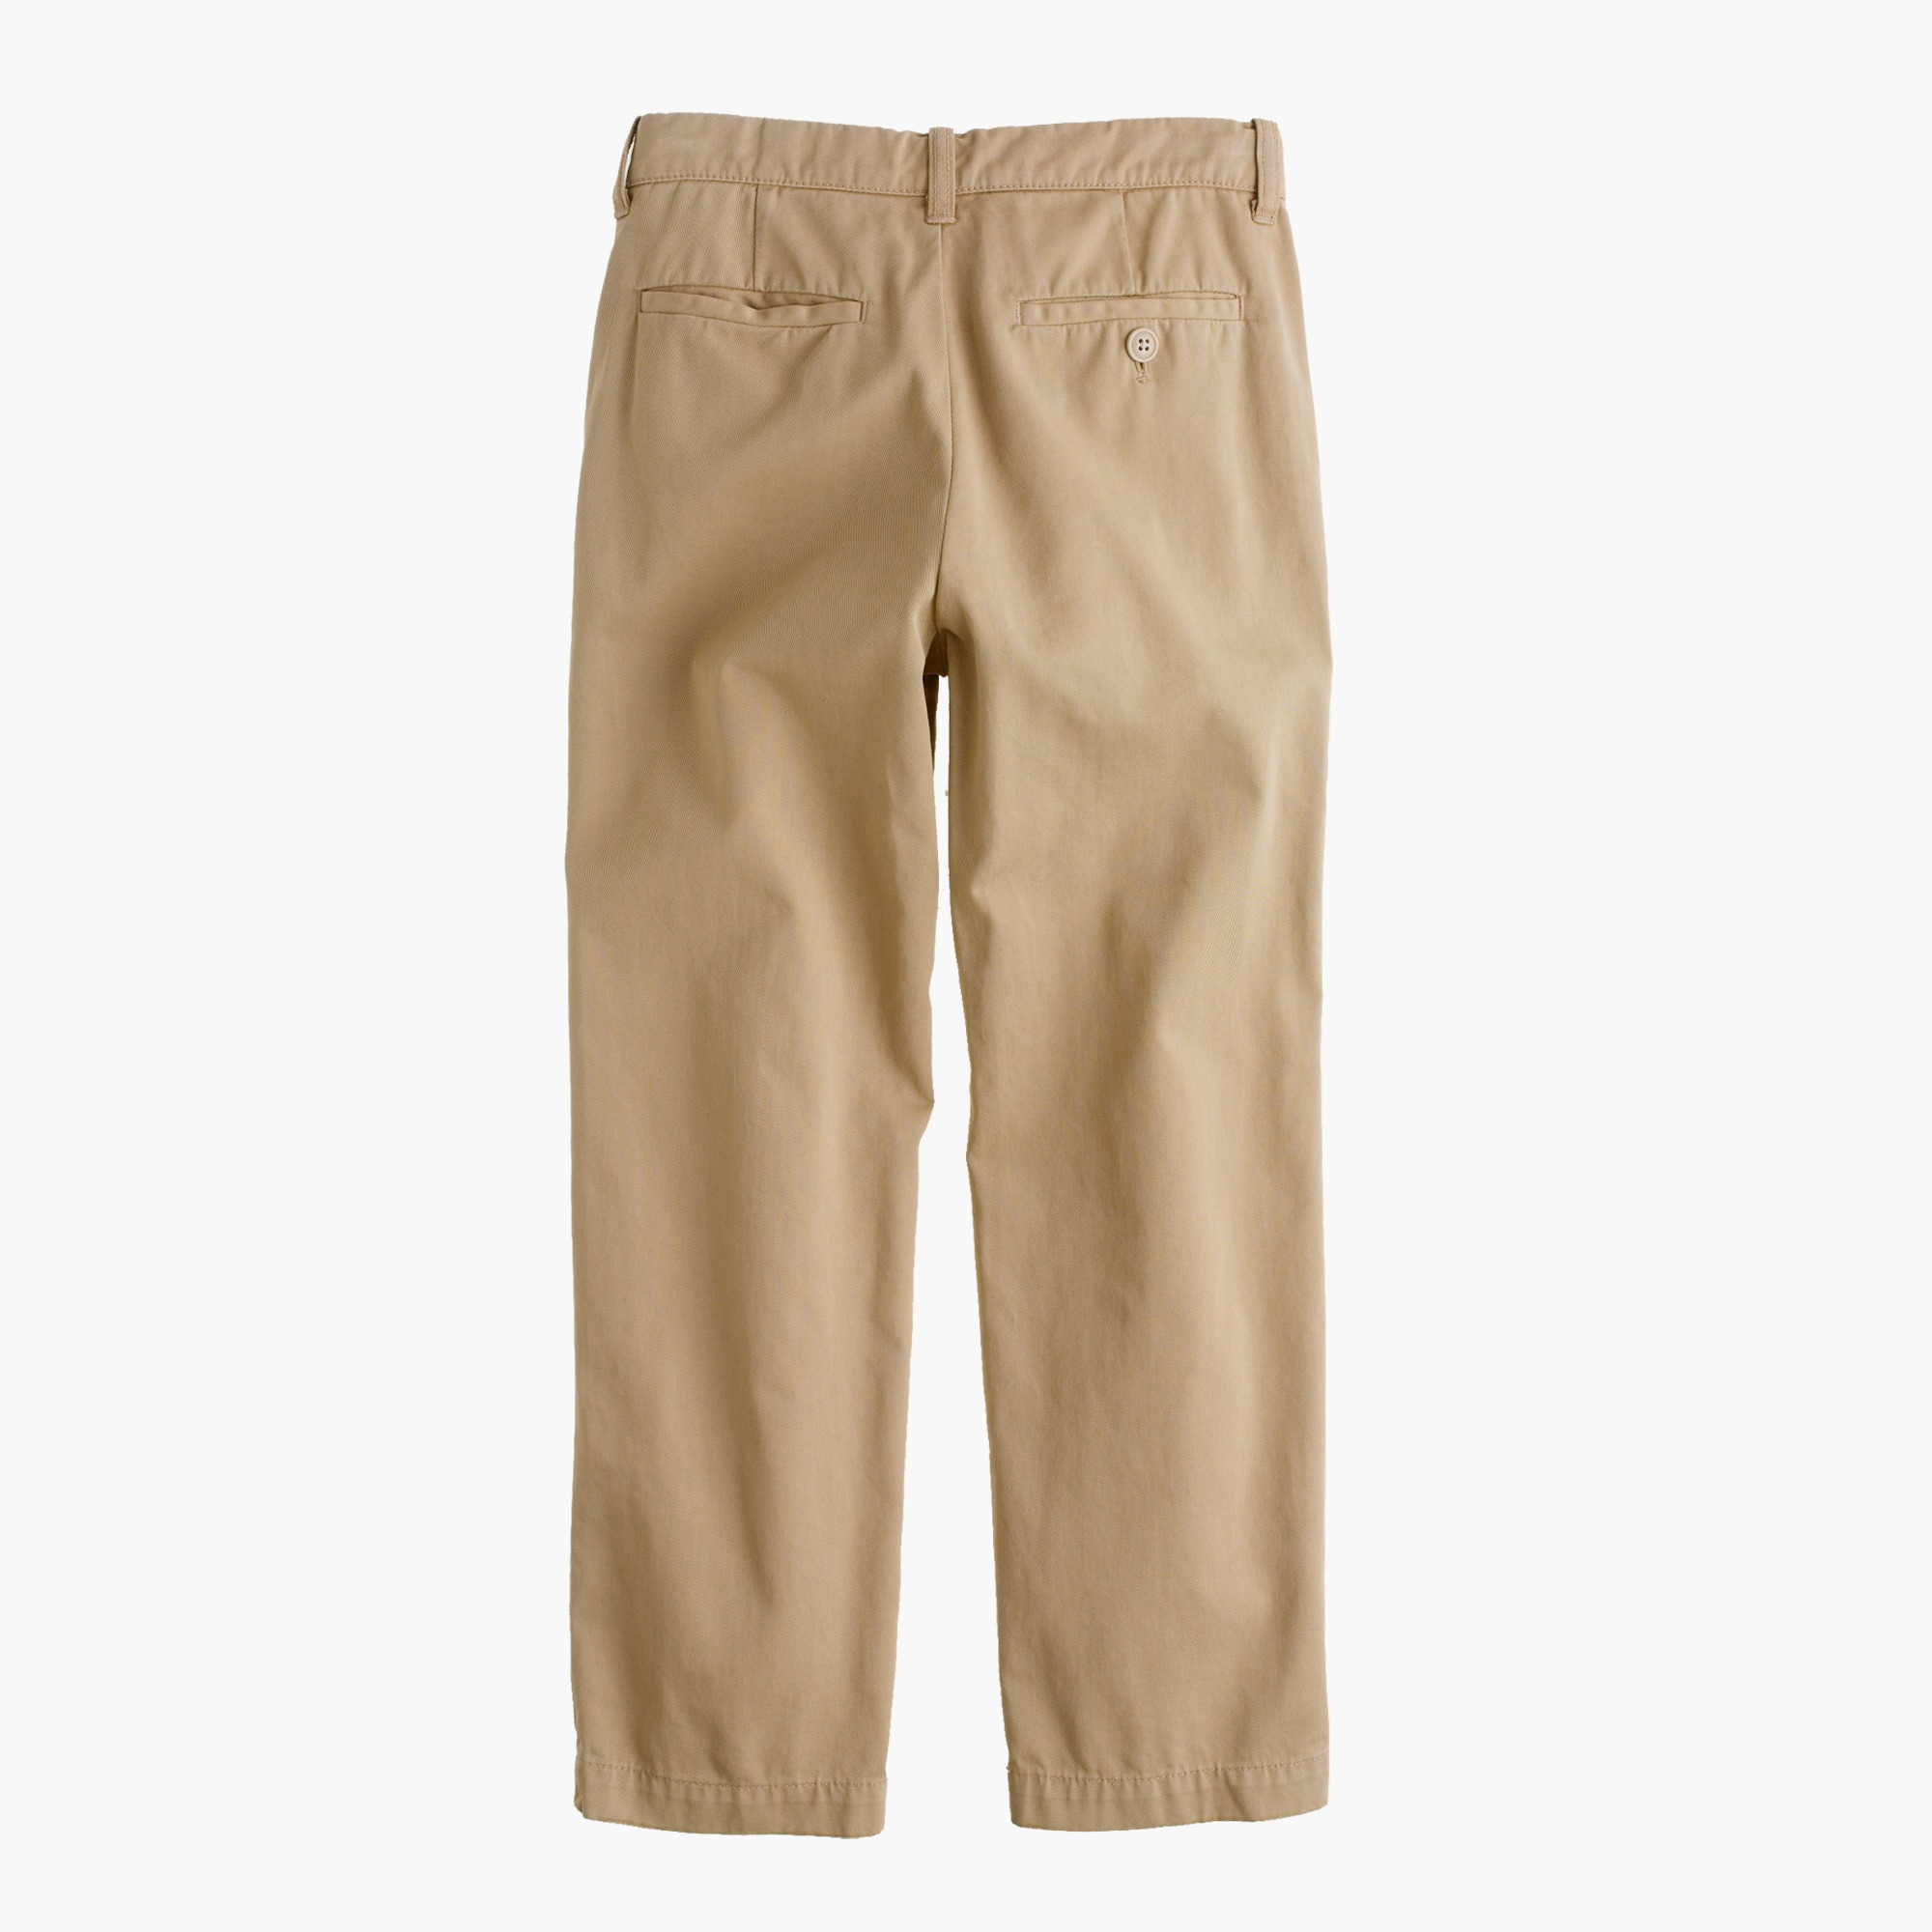 Image 2 for Boys' garment-dyed chino pant in straight fit